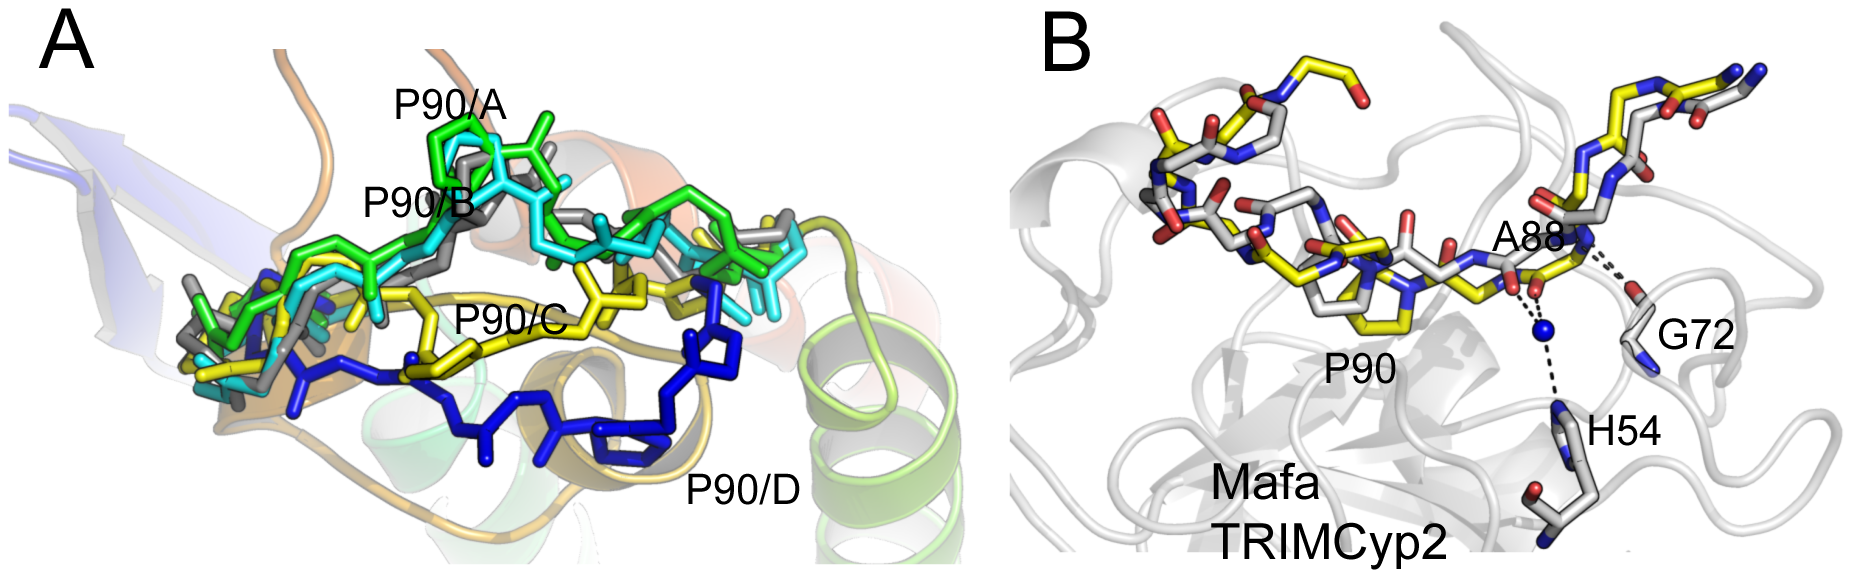 CypA-binding loop conformations in the HIV2 +A88 capsid structure.